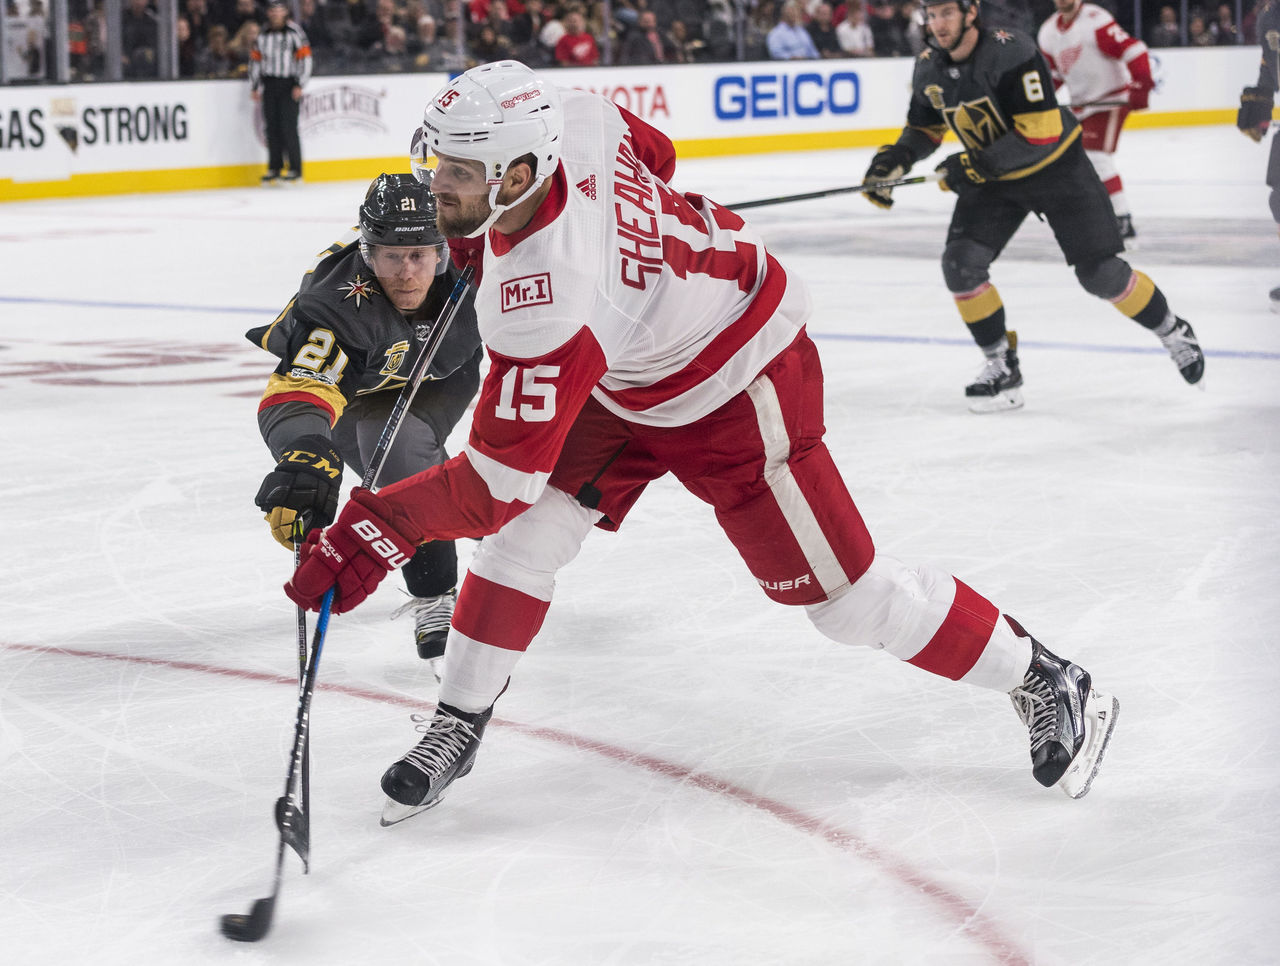 Cropped_2017-10-14t035821z_2115772763_nocid_rtrmadp_3_nhl-detroit-red-wings-at-vegas-golden-knights